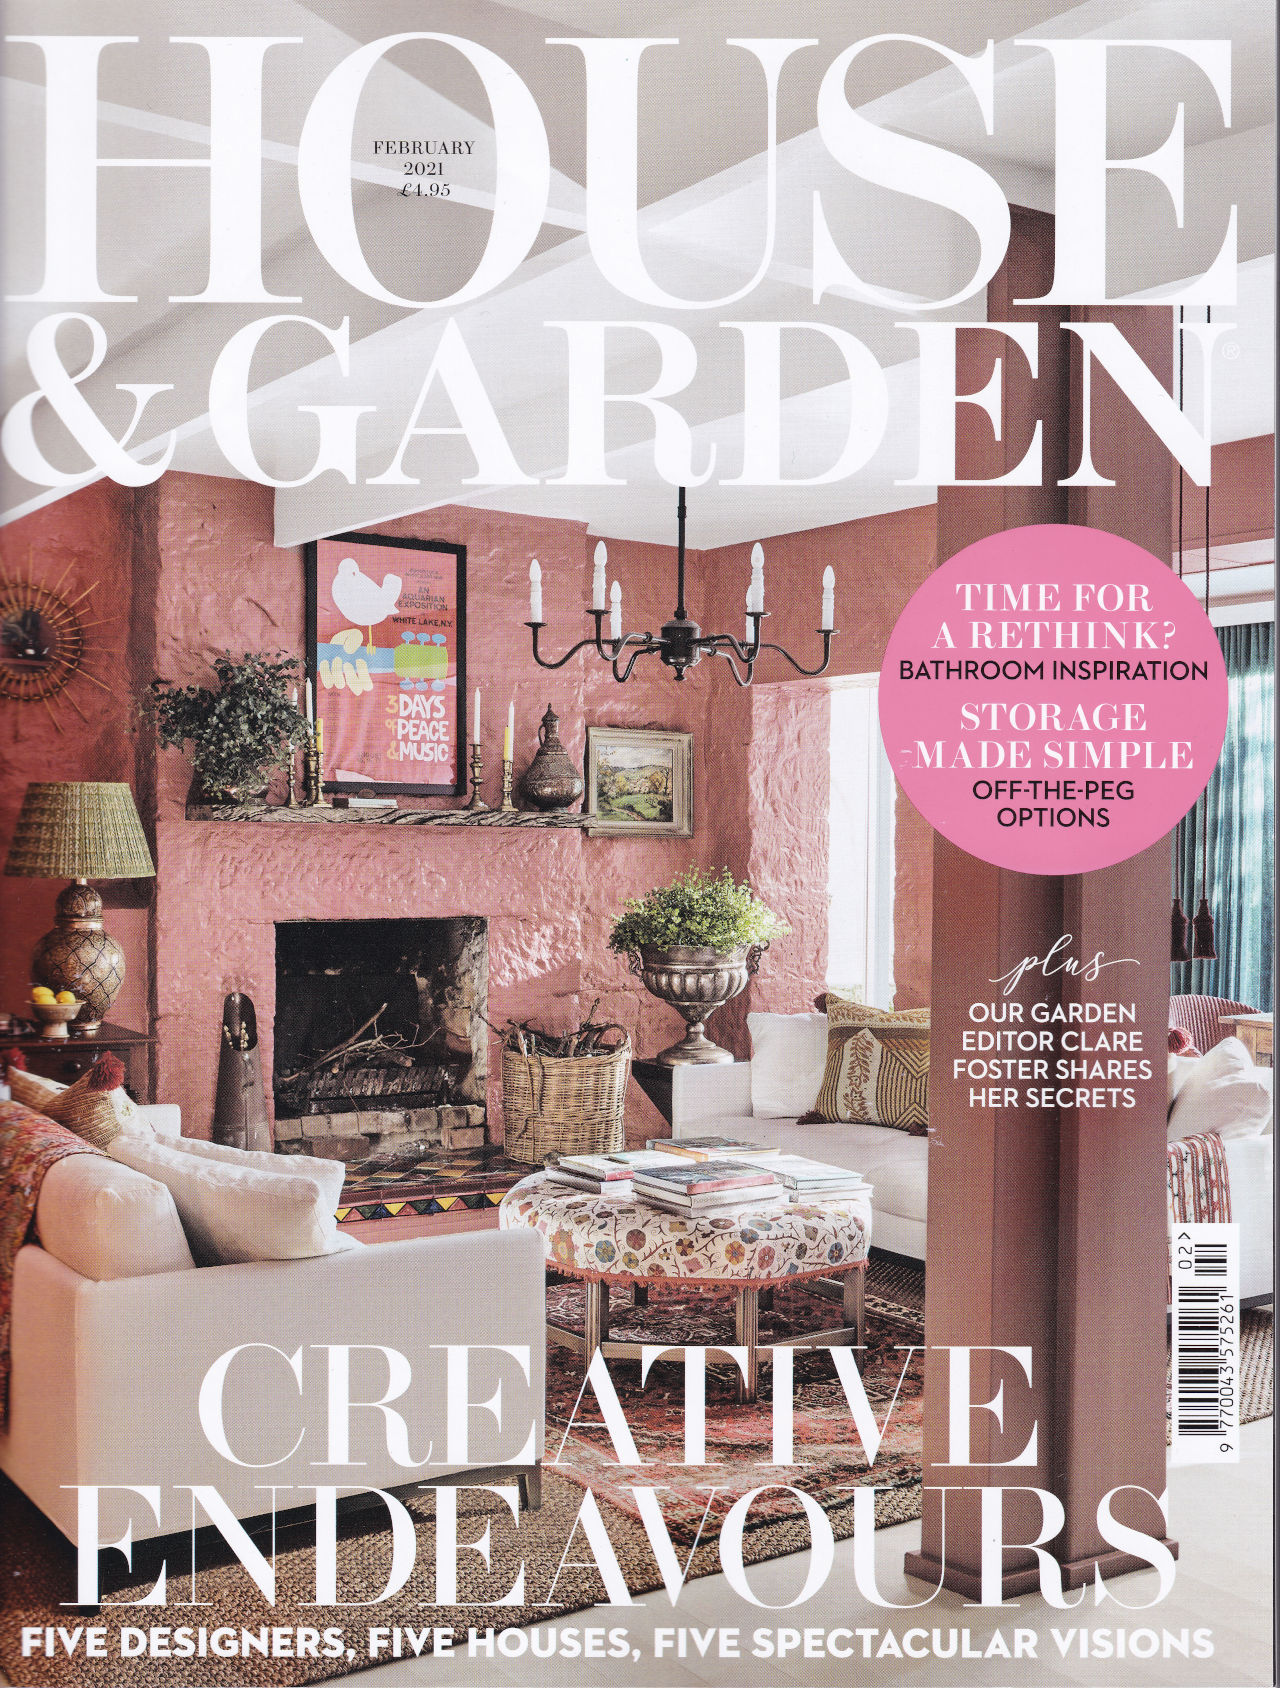 house and garden feb 21 cover web